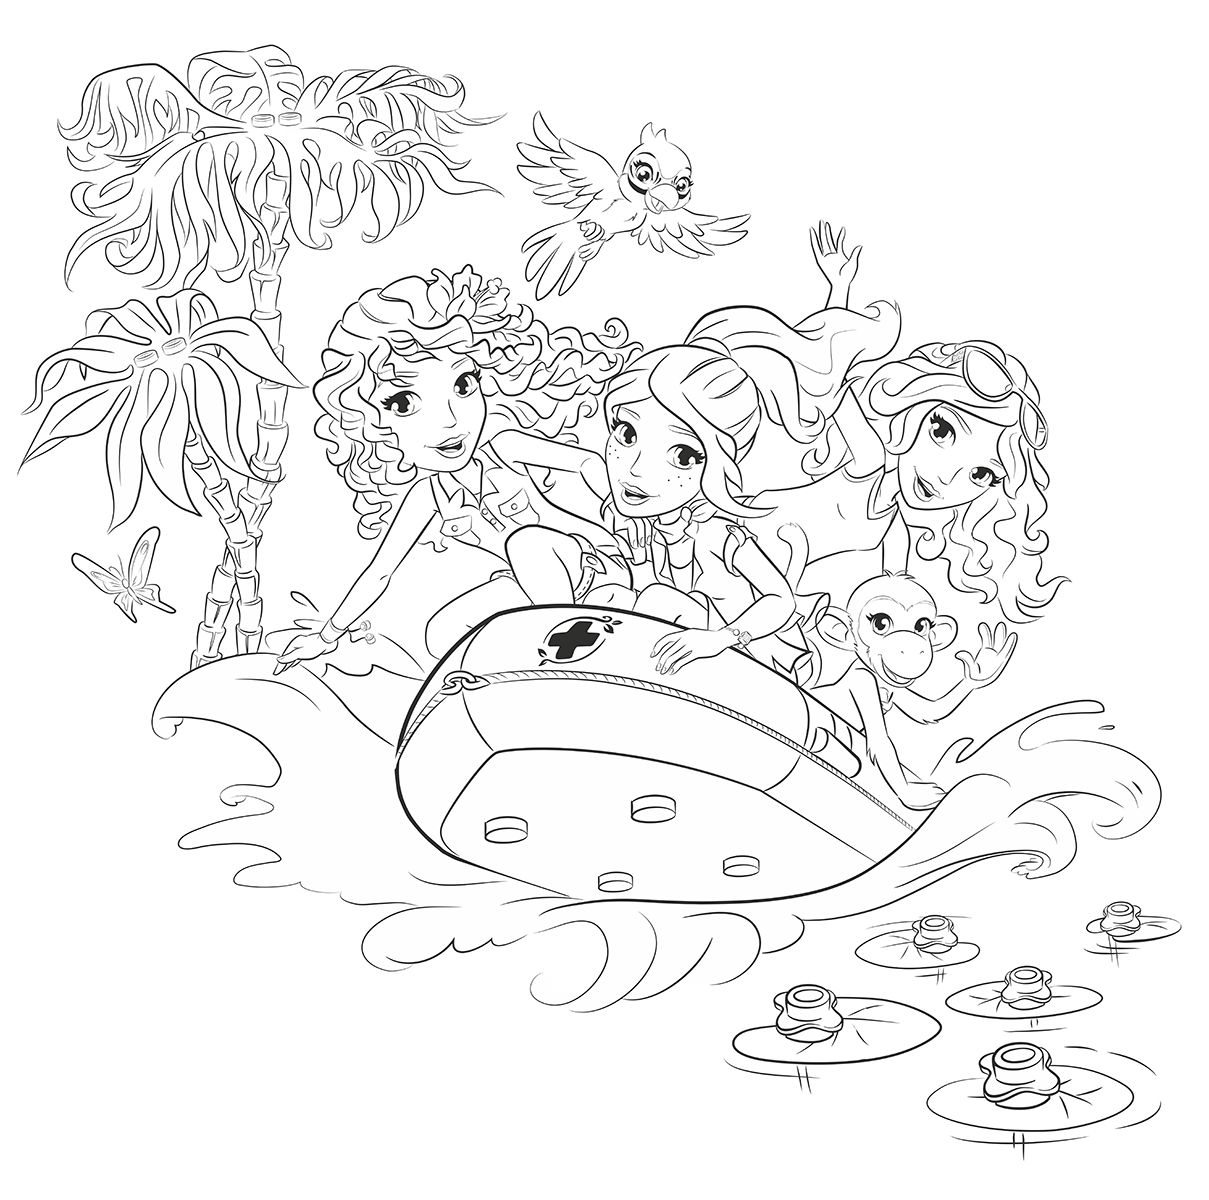 8 Coloring Pages Lego Friends Ideas